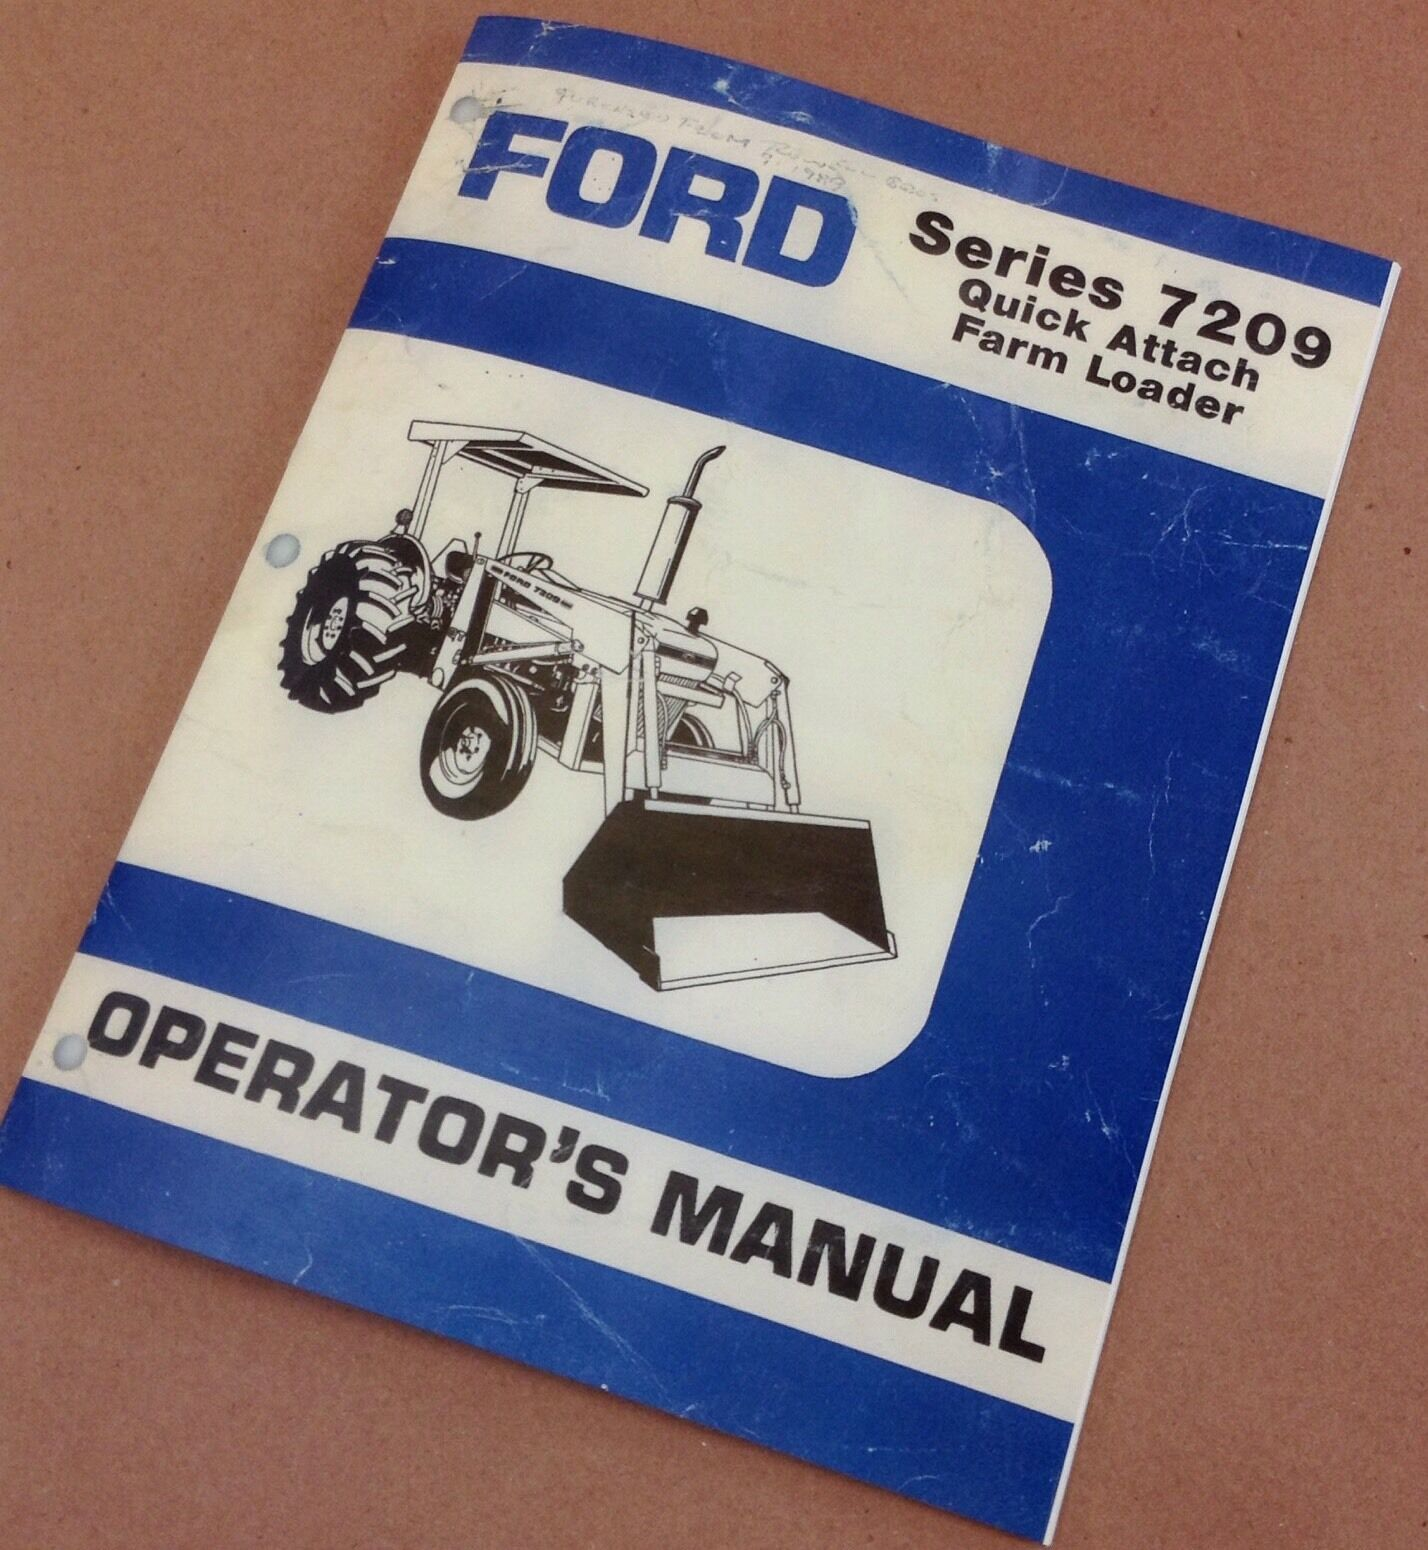 Ford 1710 Parts Diagram Schematic Diagrams 2810 Tractor Wiring Series 2 Electrical Work 2120